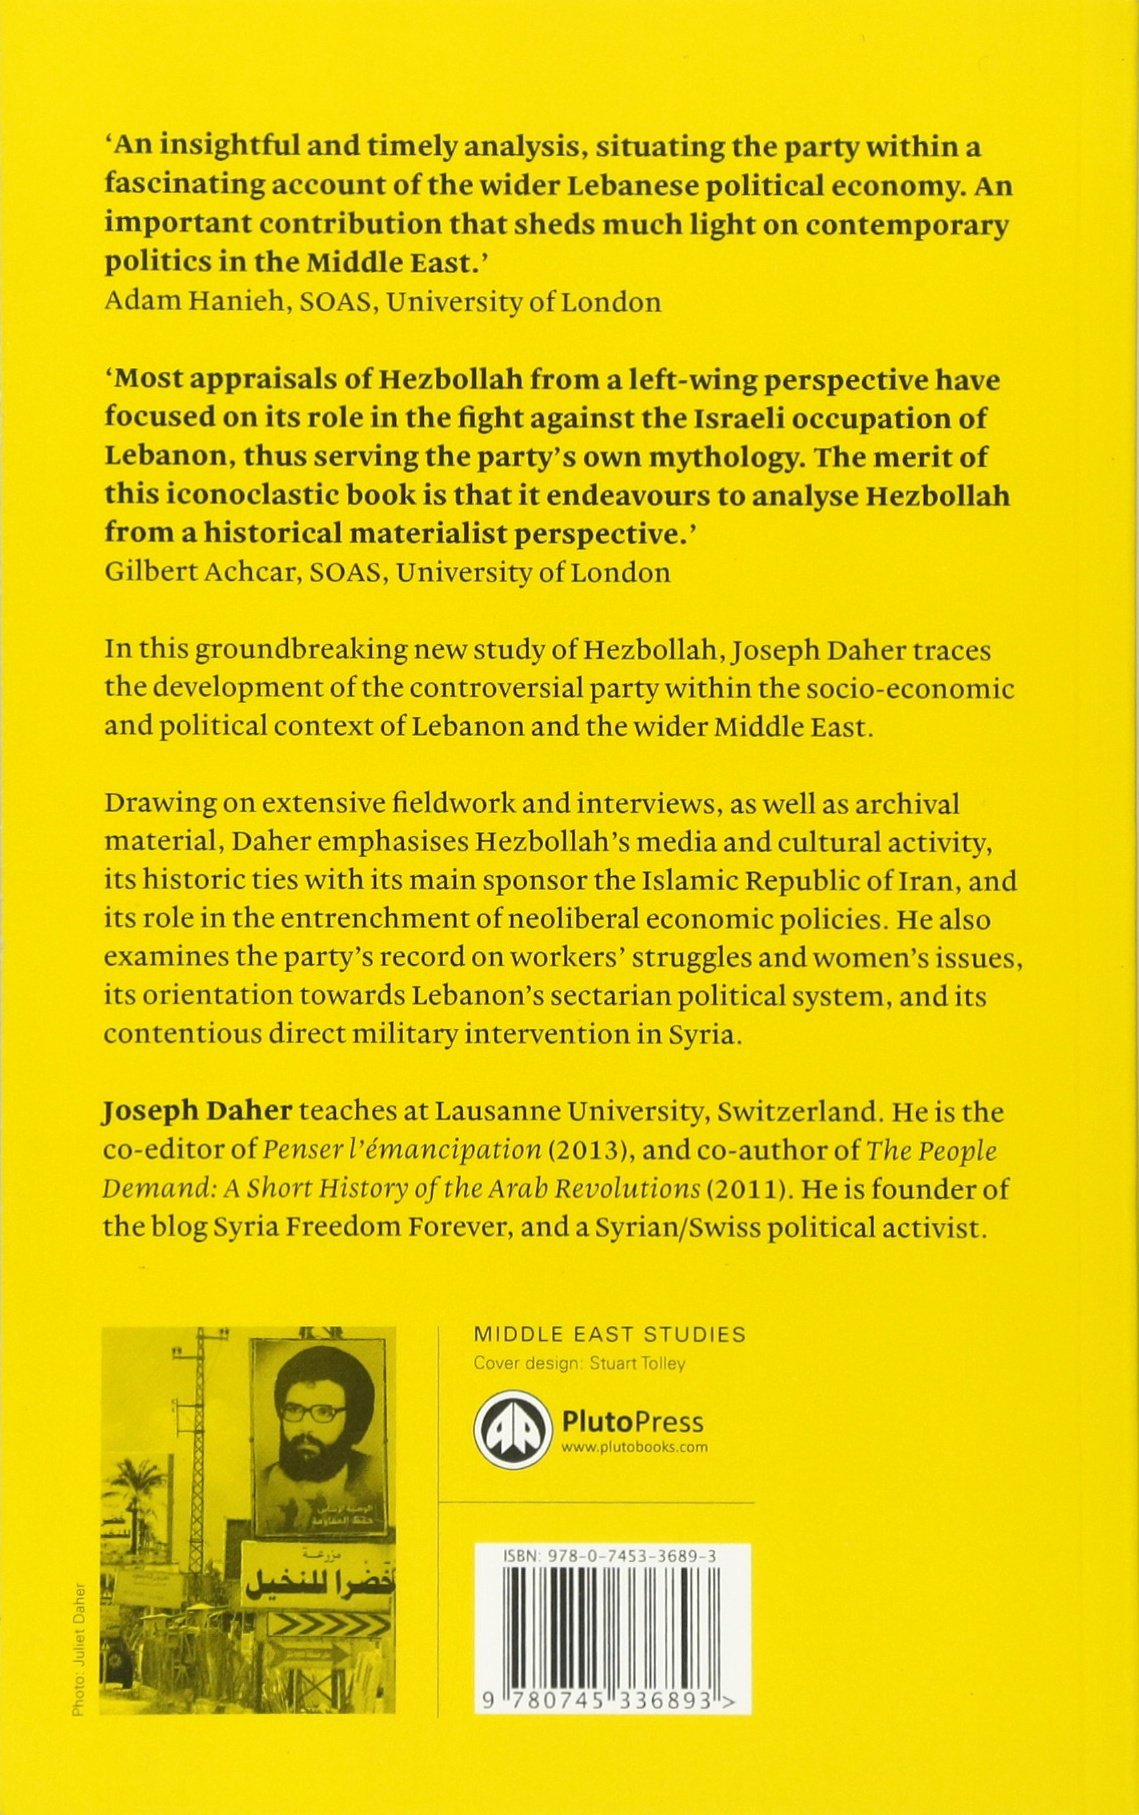 terrorism and hezbollah essay Executive summary: iran helped create the terrorist group hezbollah in lebanon  in the early 1980s in order to expand its influence in the region under the.